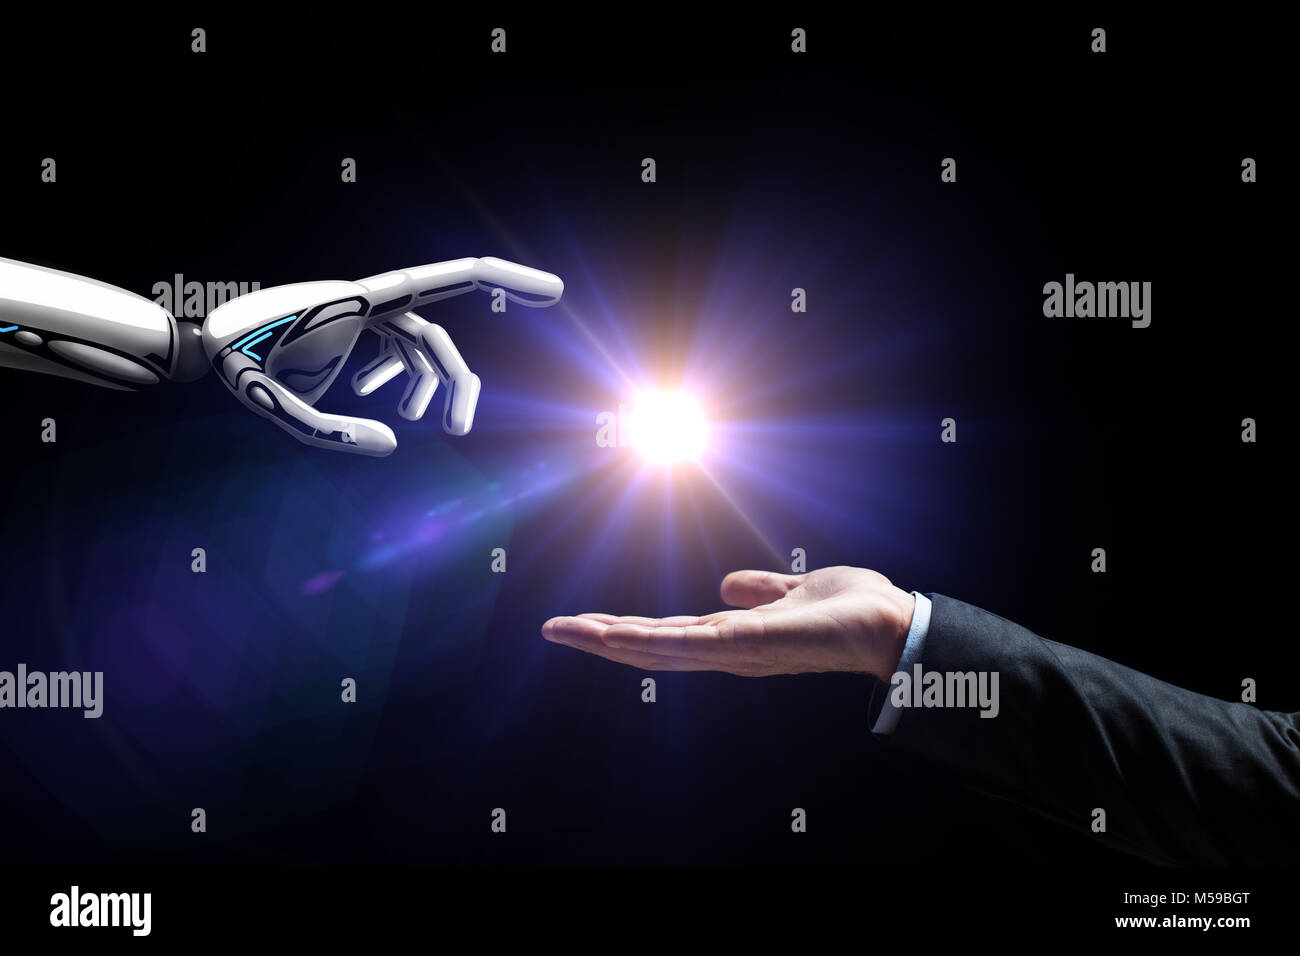 robot and human hand flash light over black - Stock Image